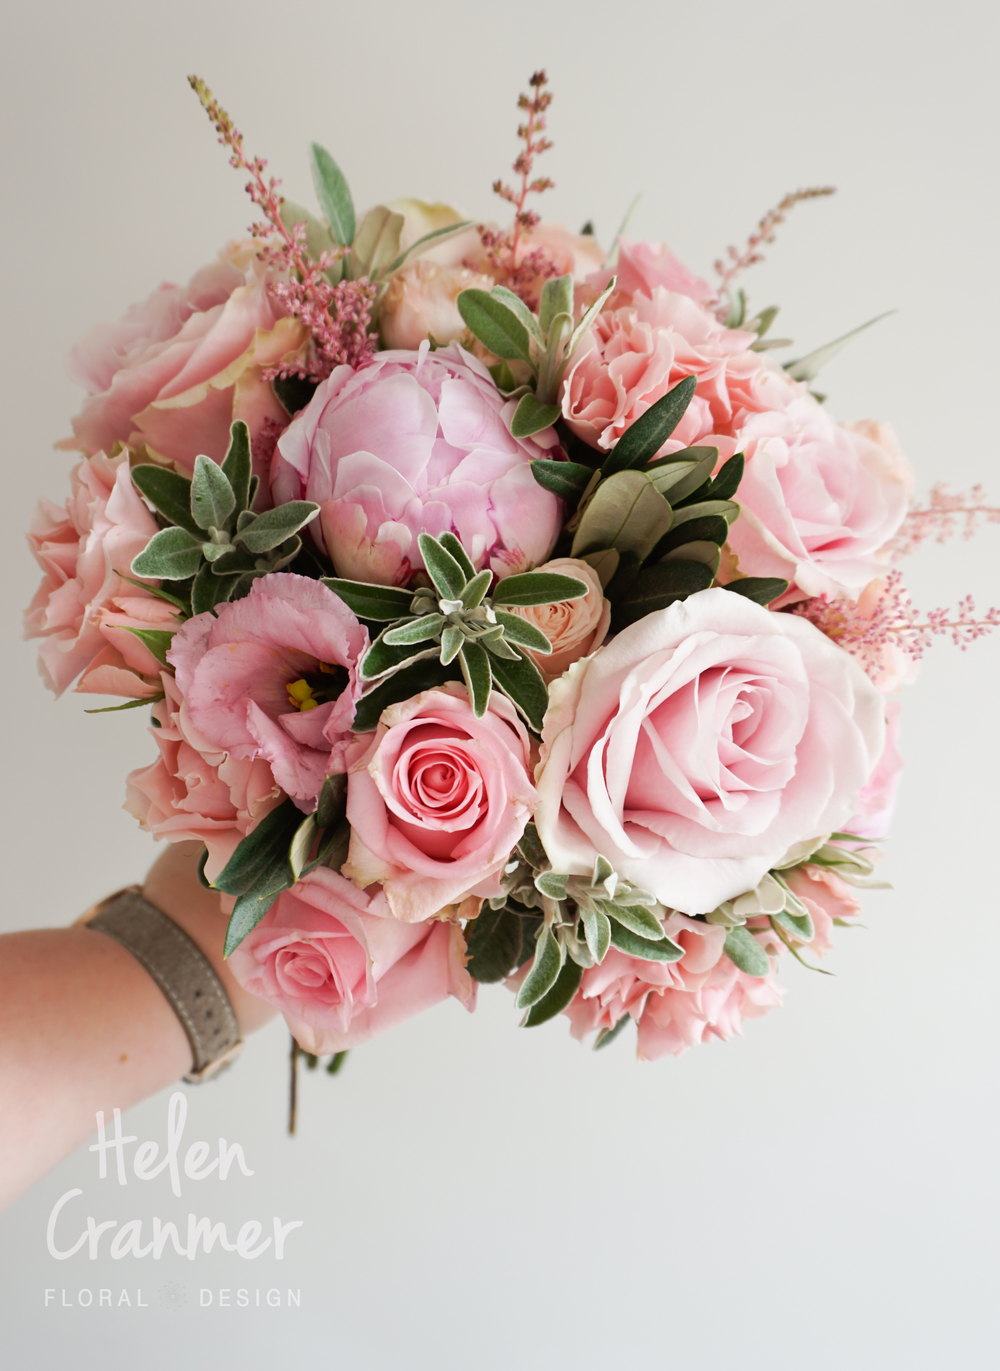 Helen Cranmer Floral Design wedding flowers april 2016 (22 of 25).jpg